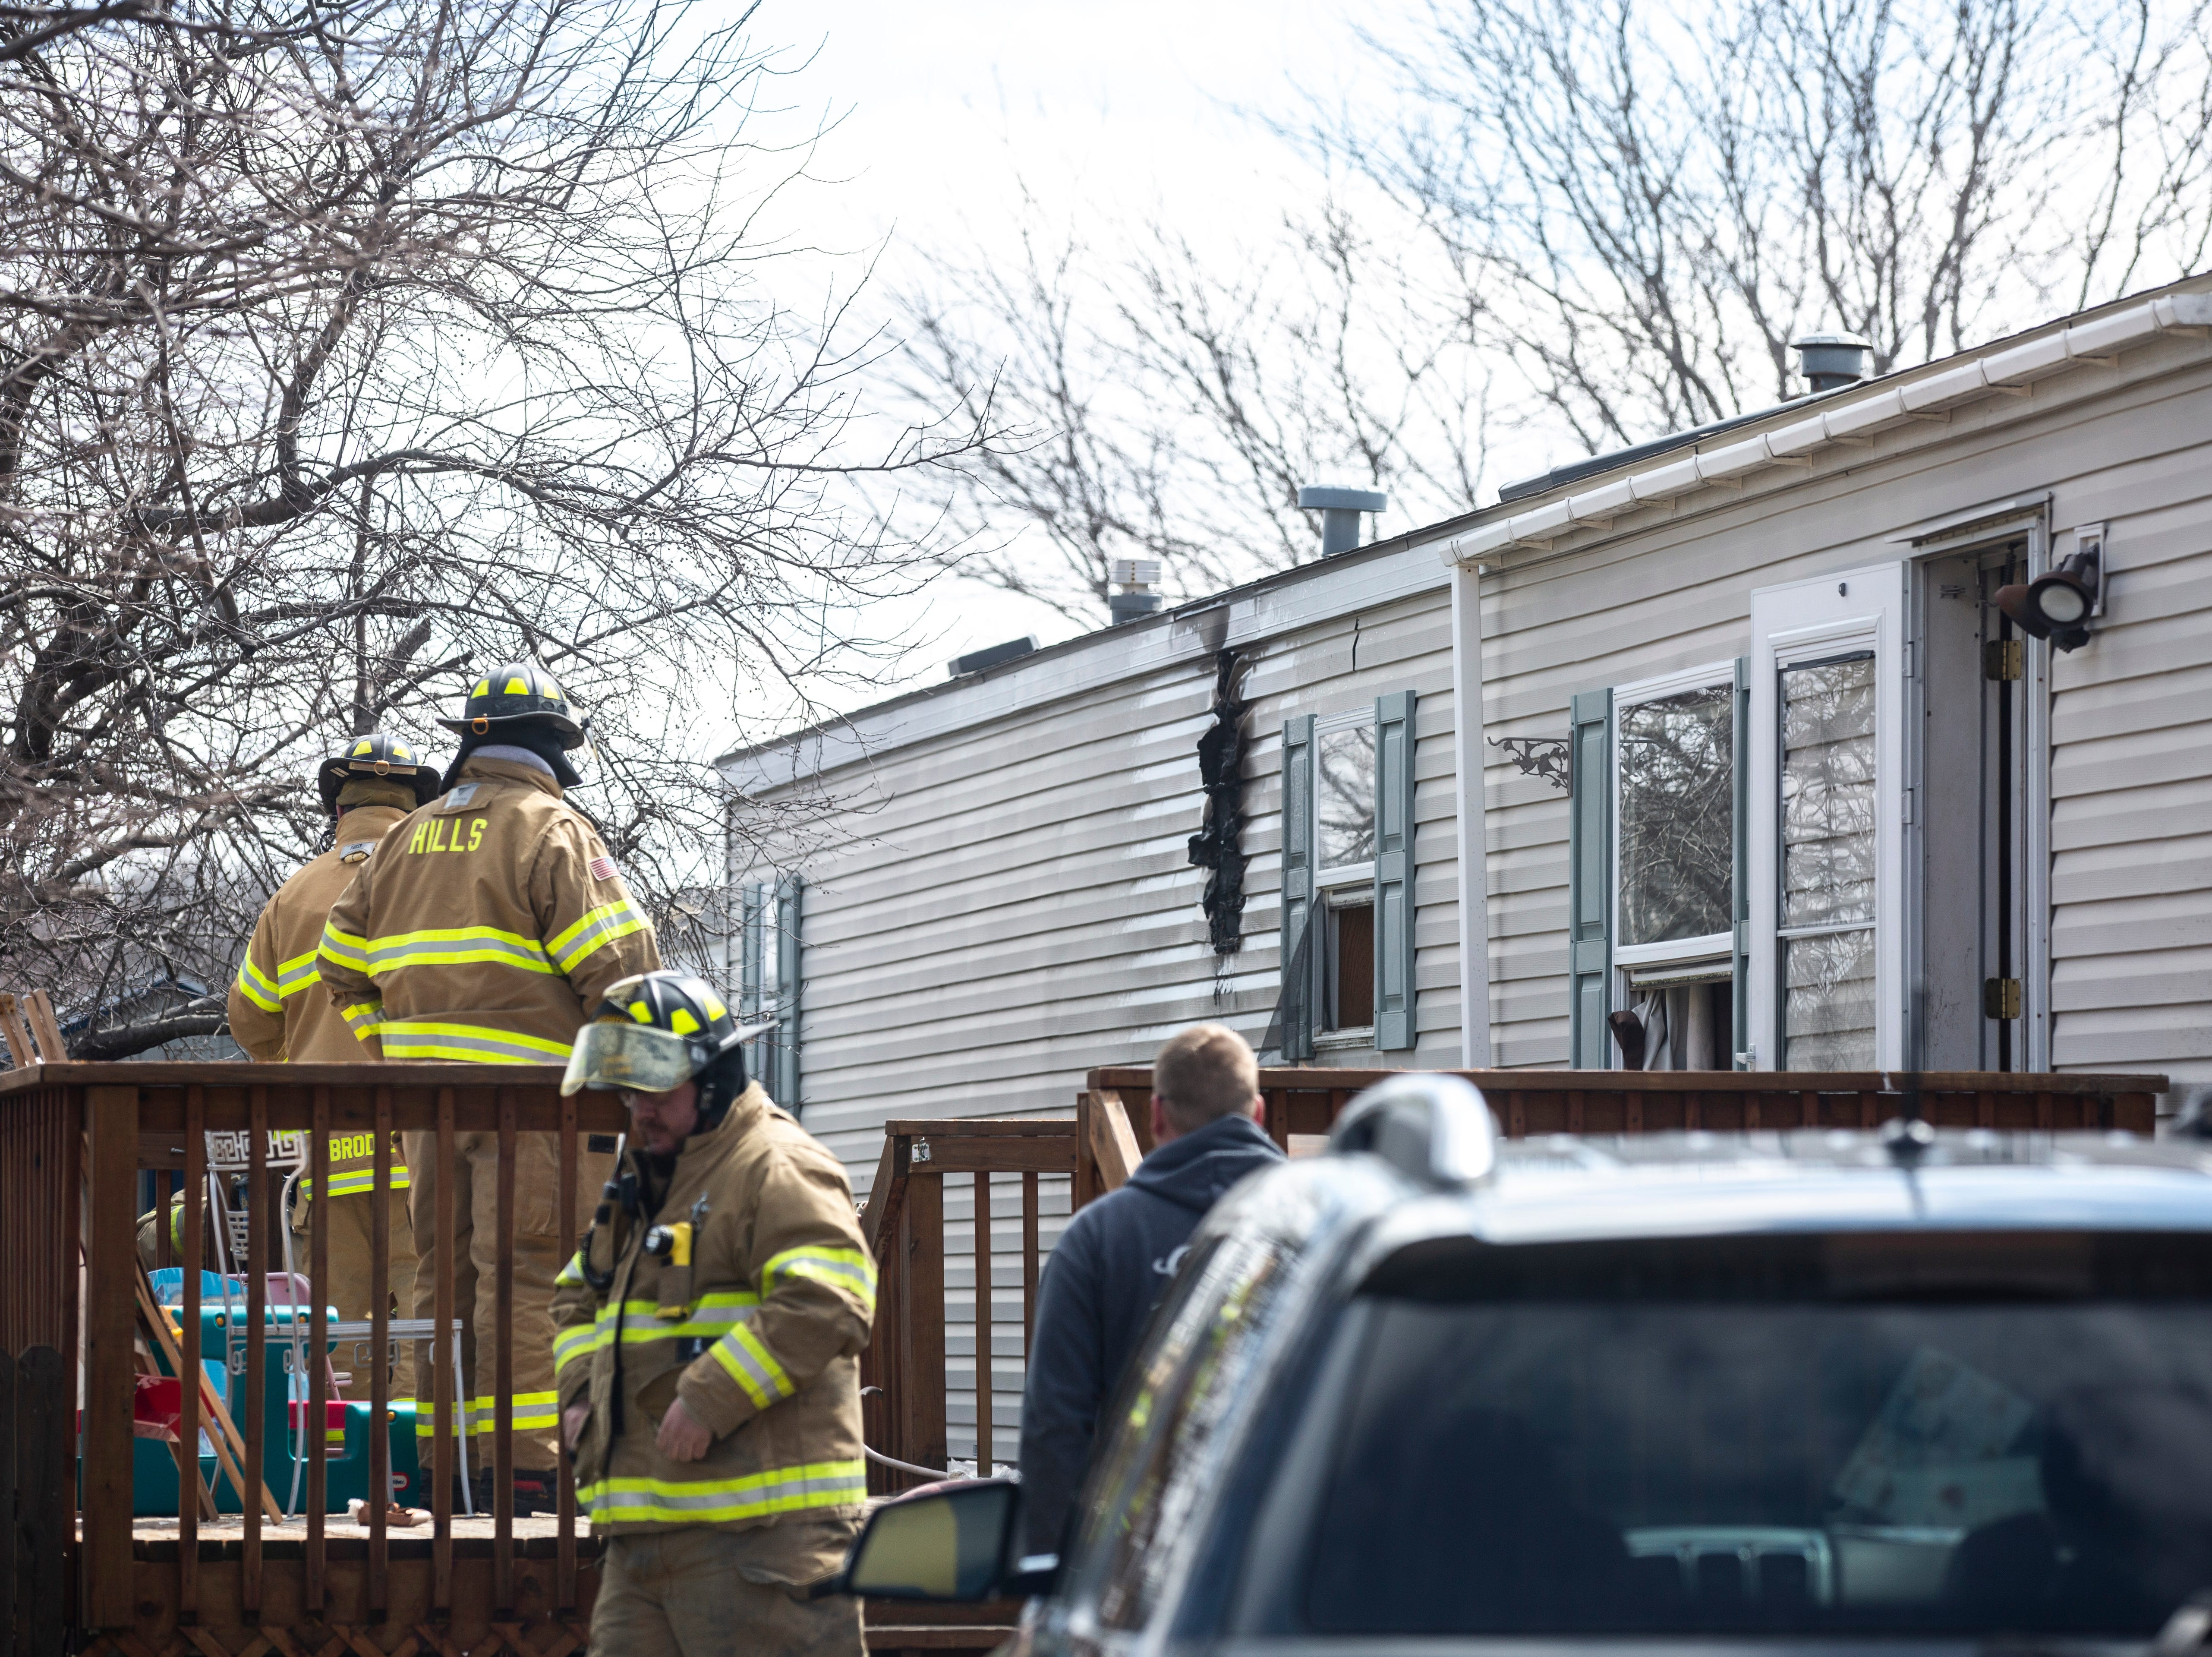 Firefighters respond to a kitchen fire on Tuesday, April 2, 2019, in the 300 block of Mosswood Lane at the Lake Ridge mobile home park in Iowa City, Iowa.